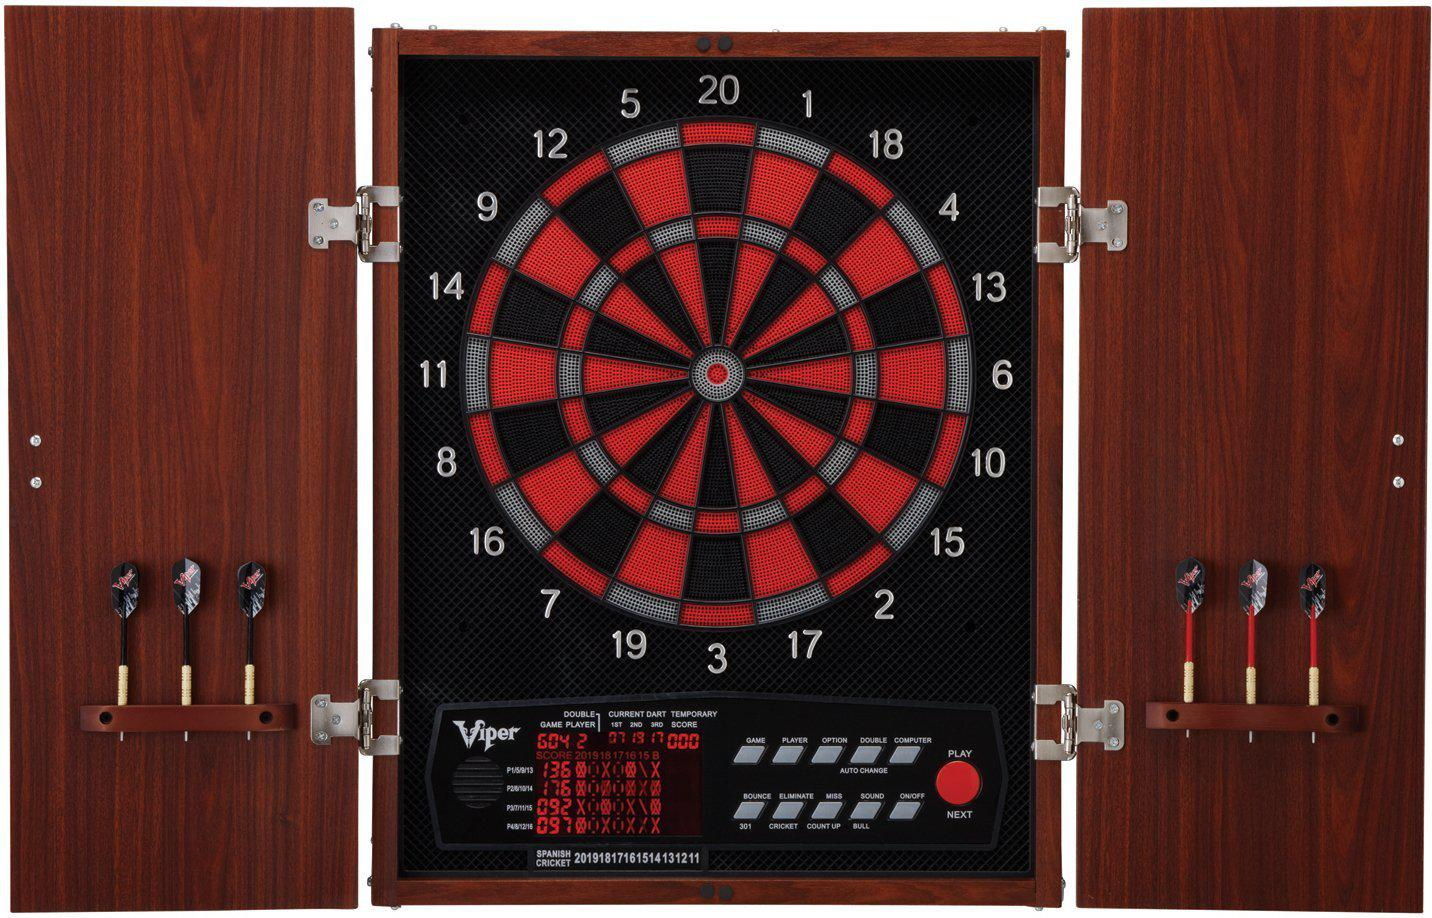 viper cat neptune electronic board and cabinet darts